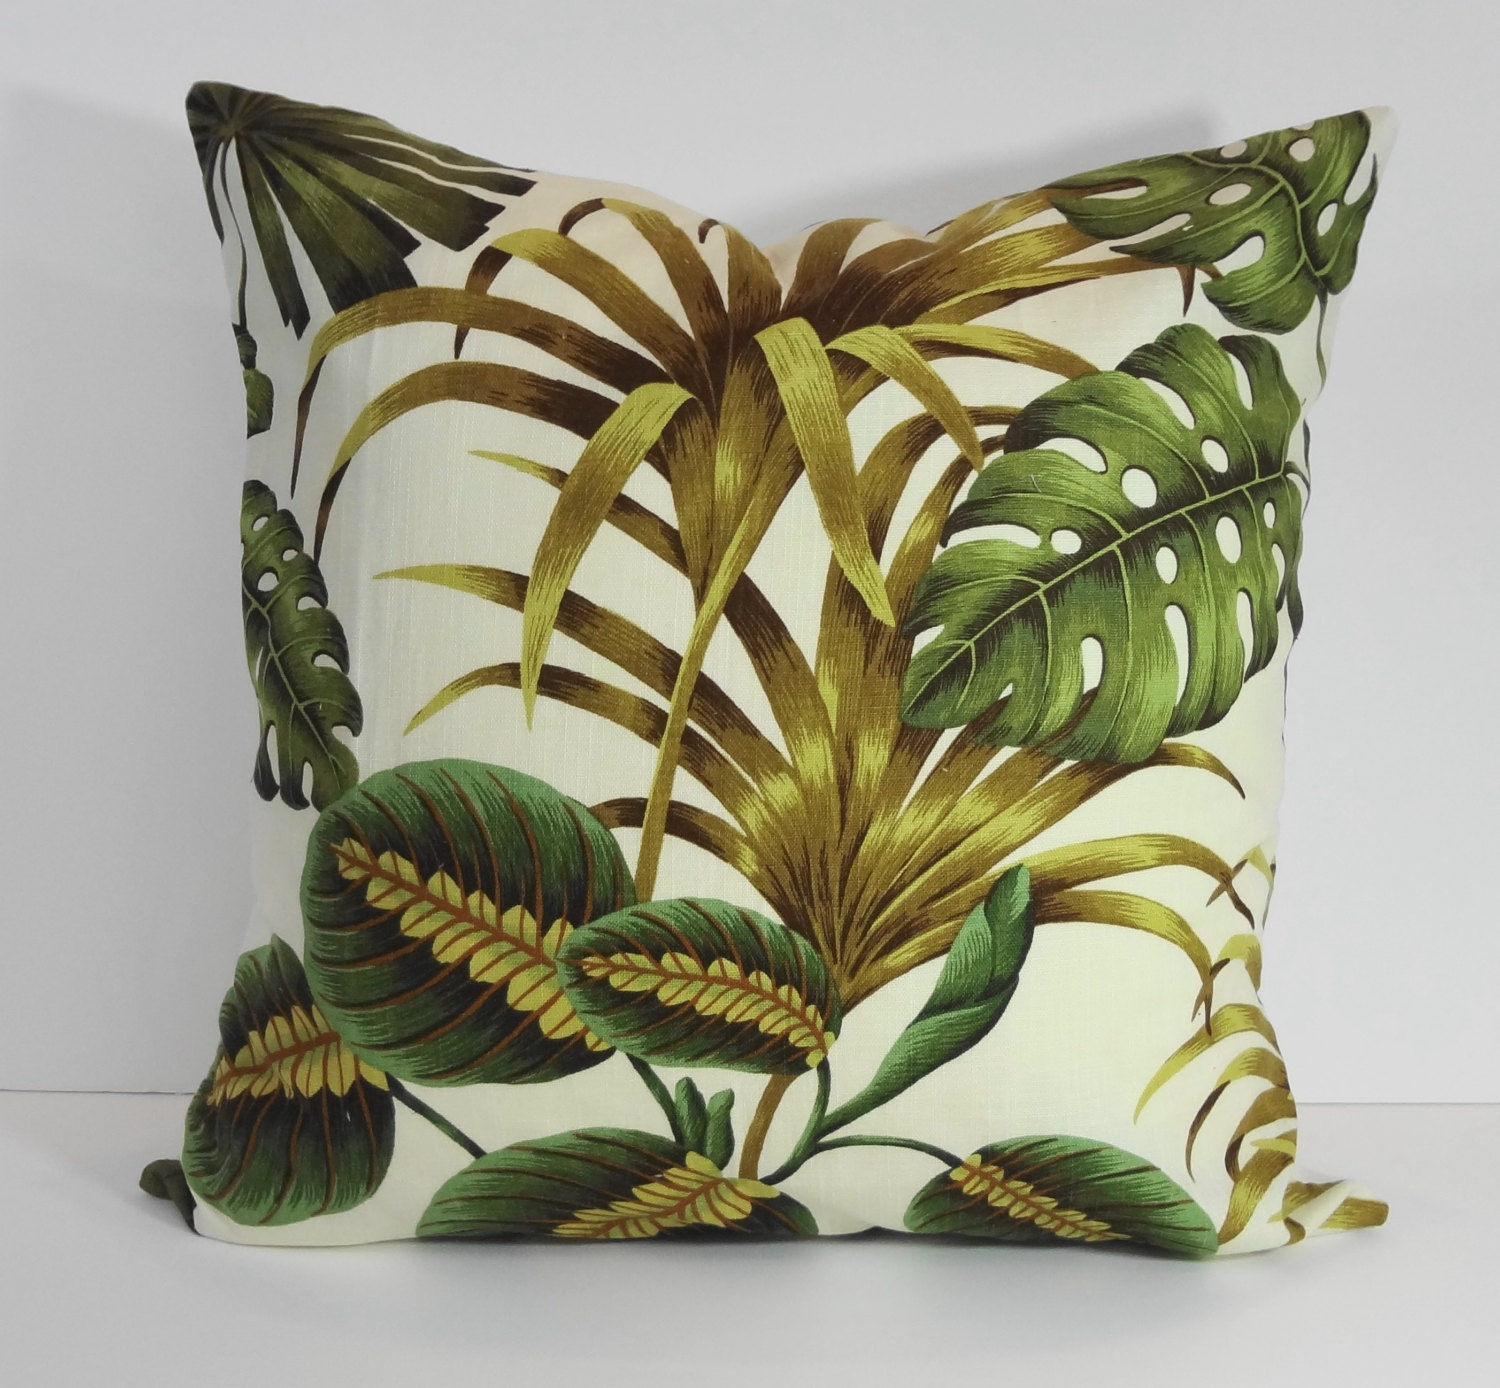 Decorative Pillows Tropical : Tropical Pillow Cover Cushion Throw Pillow Decorative Pillow